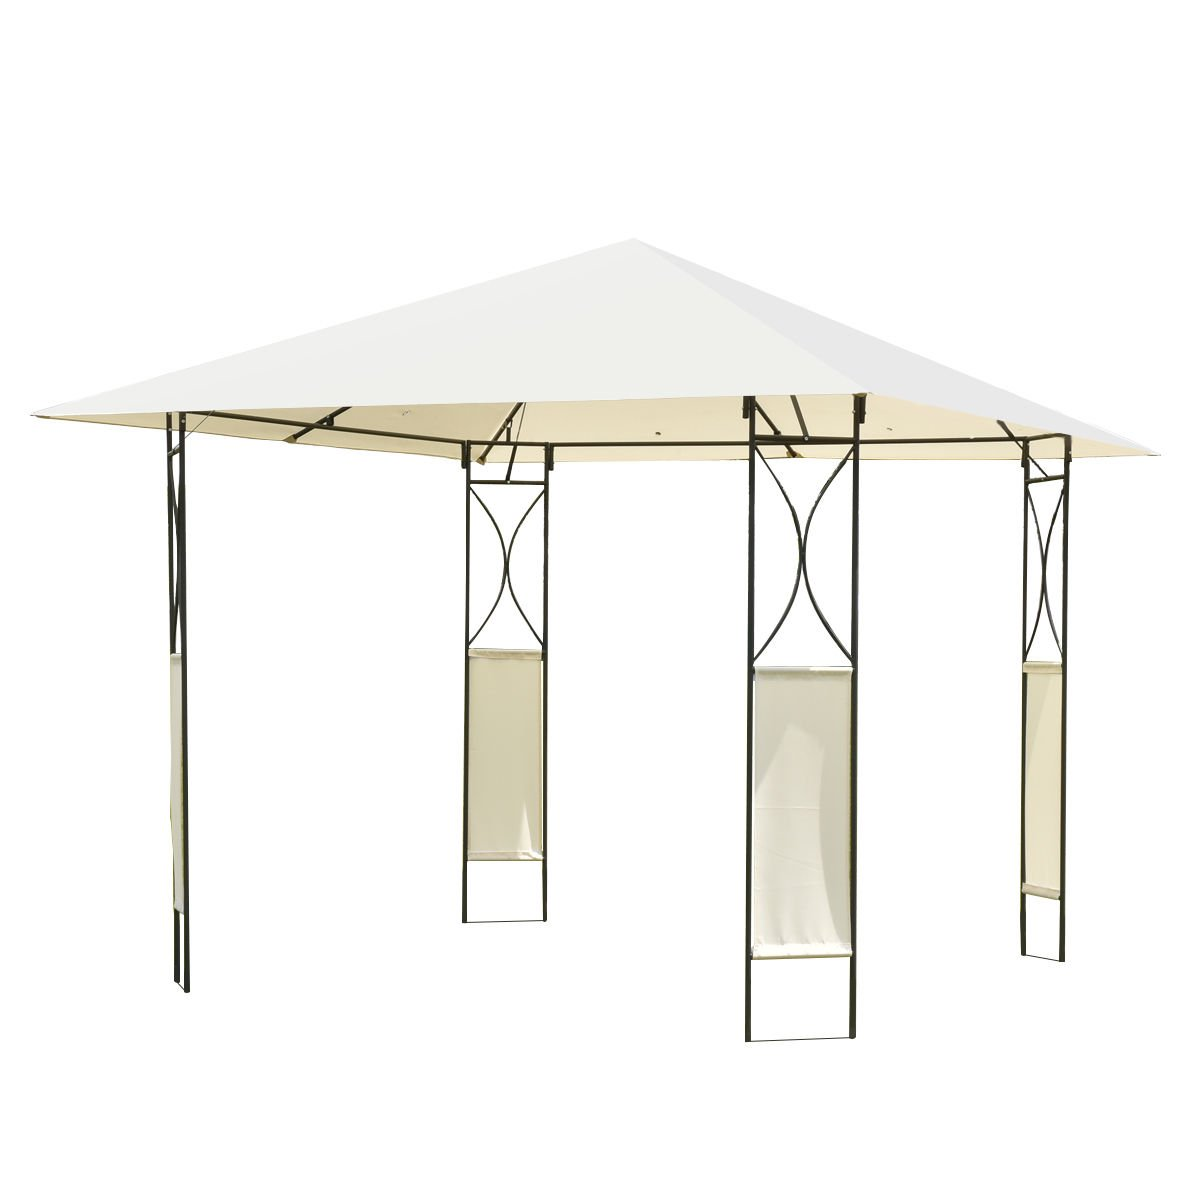 10'x10' Square Gazebo Canopy Tent Shelter Awning Garden Patio W/Beige Cover New + FREE E-Book